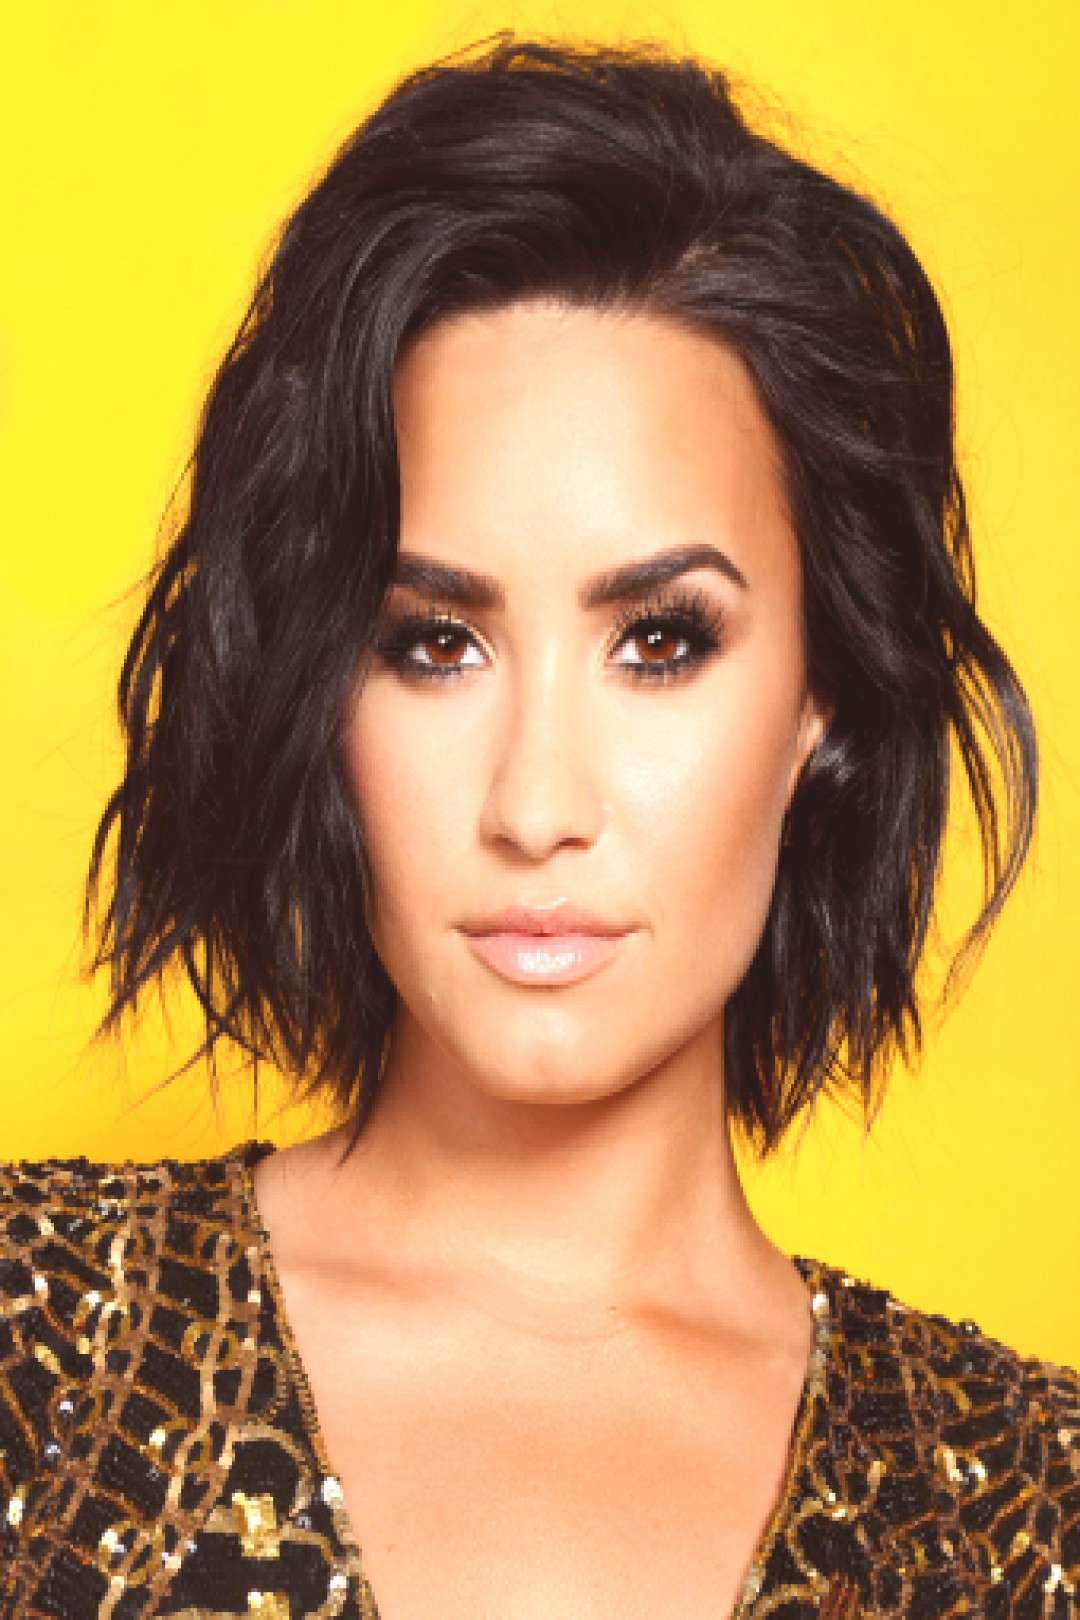 Demi Lovato is ROCKING the look from her camp days...